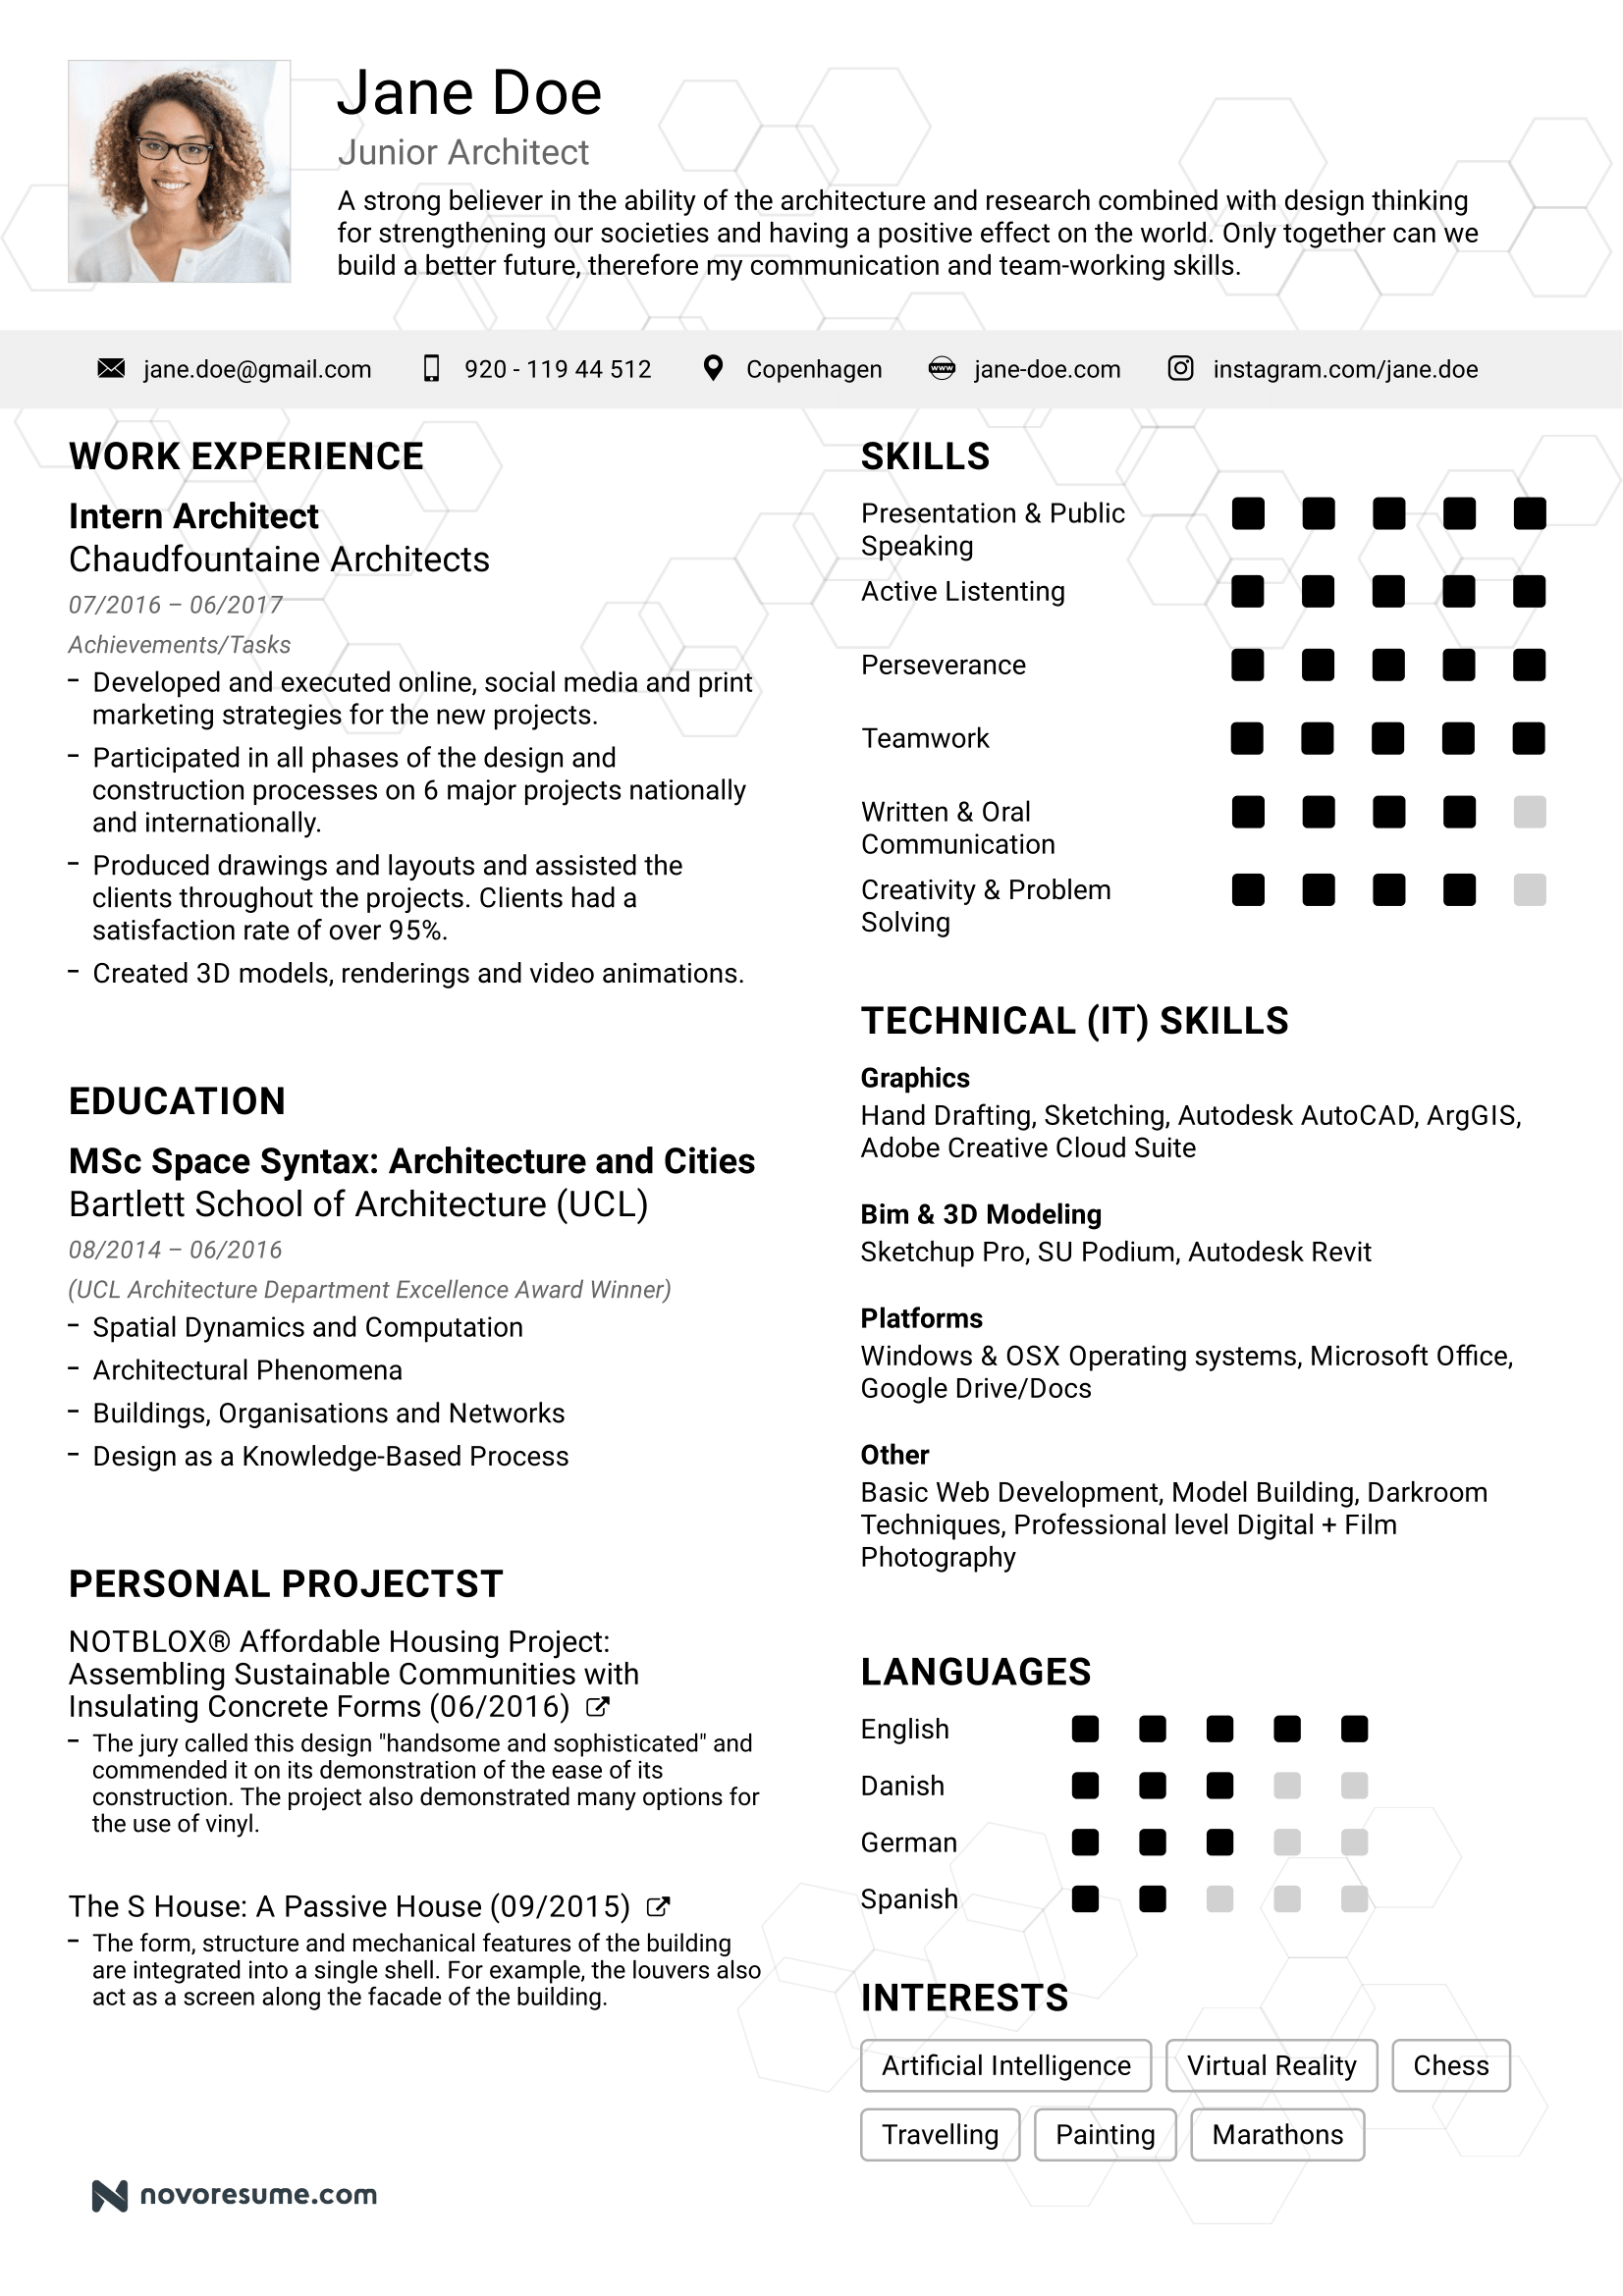 Resume Amazing 48 Resume Examples For Your Job [Writing Tips]